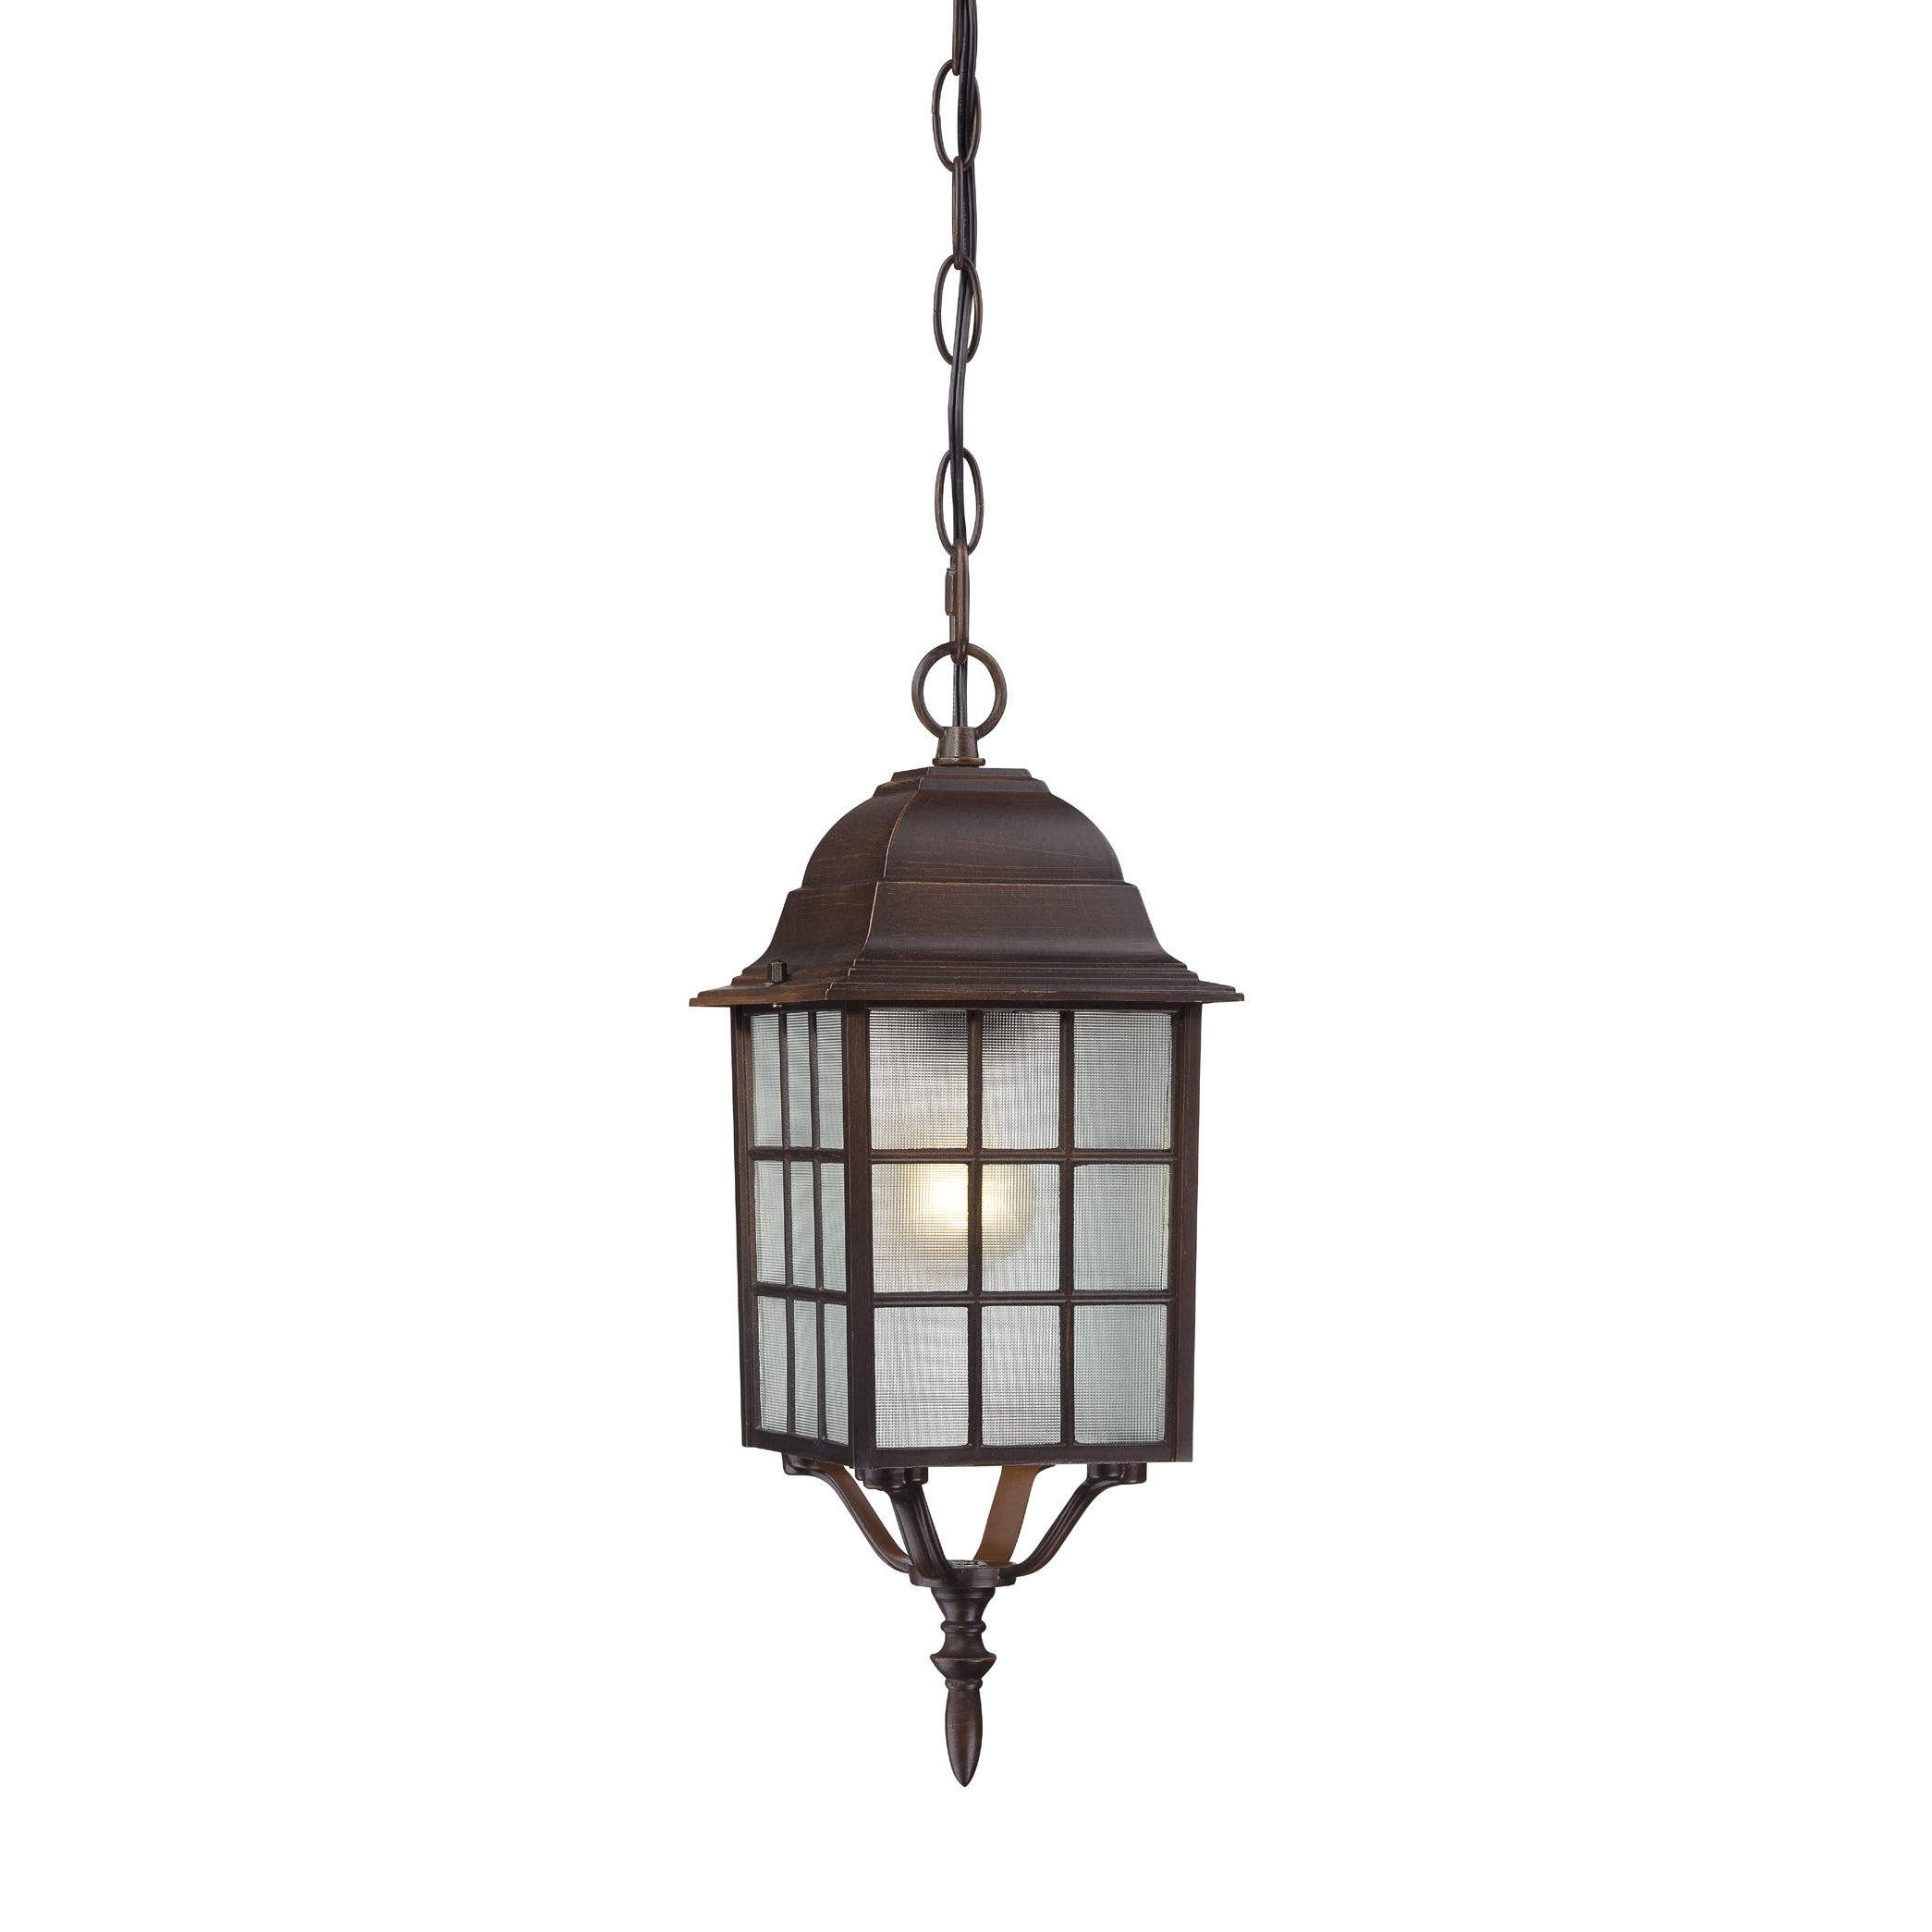 Newest Rustic Outdoor Hanging Lights With Lighting : Lighting Incredible Rustic Outdoor Pendant Images (View 15 of 20)